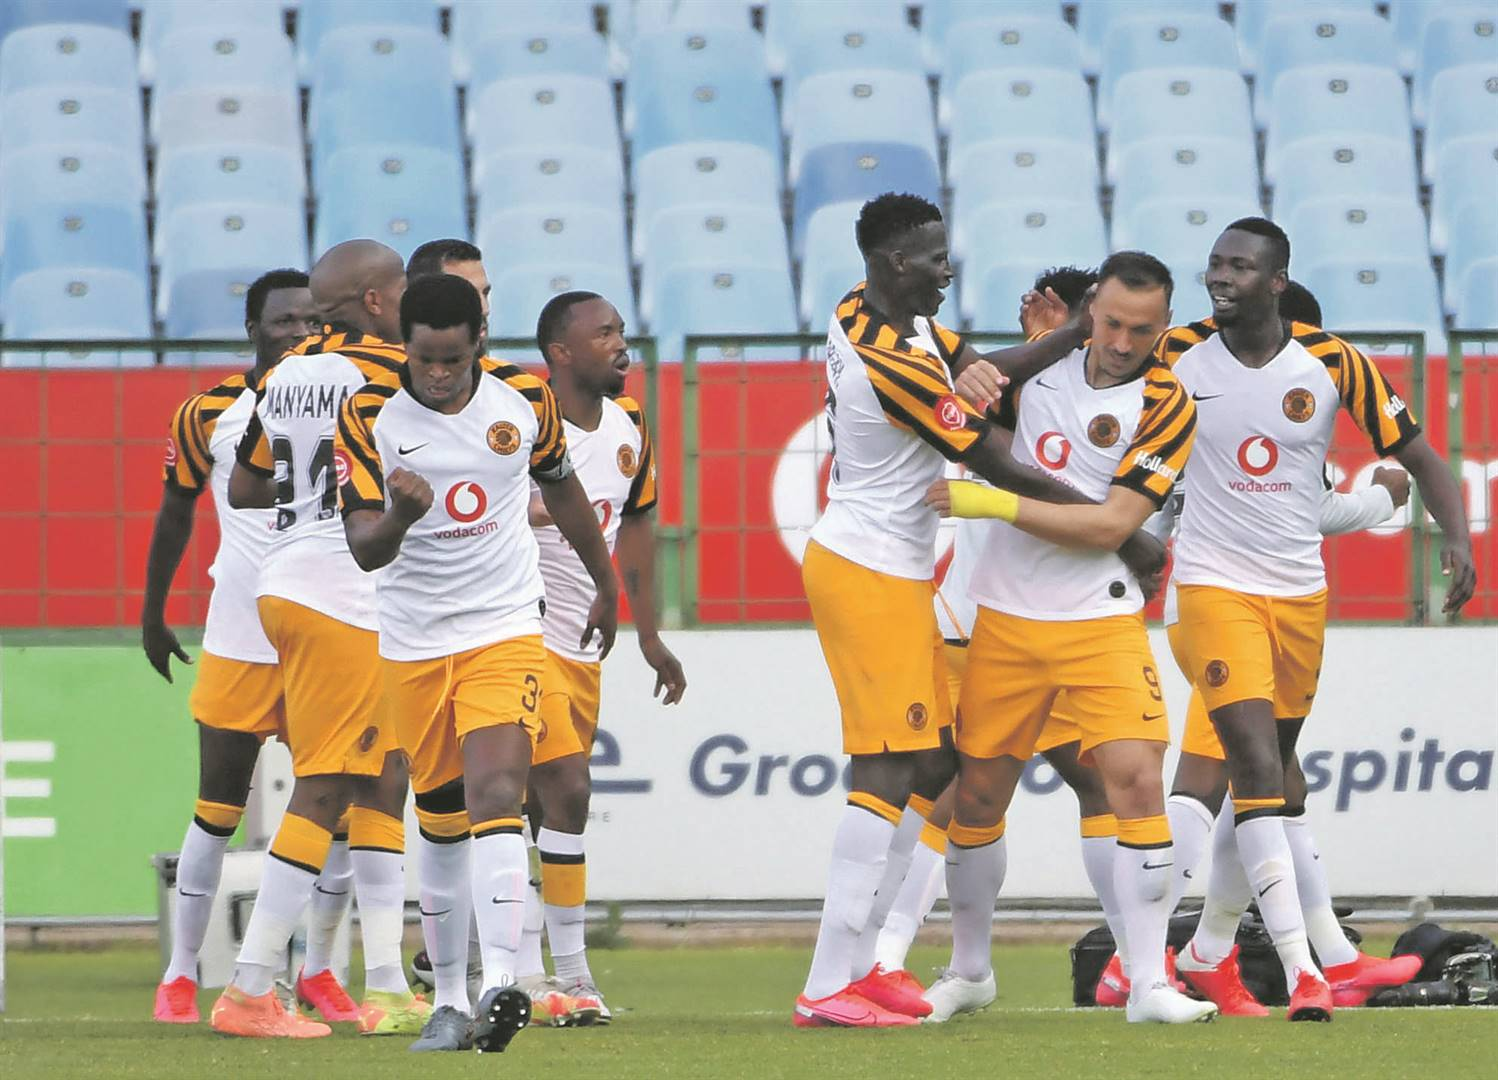 Kaizer Chiefs players celebrate their remarkable come-from-behind win over Polokwane City in their Absa Premiership game at Loftus Versfeld in Pretoria yesterday.